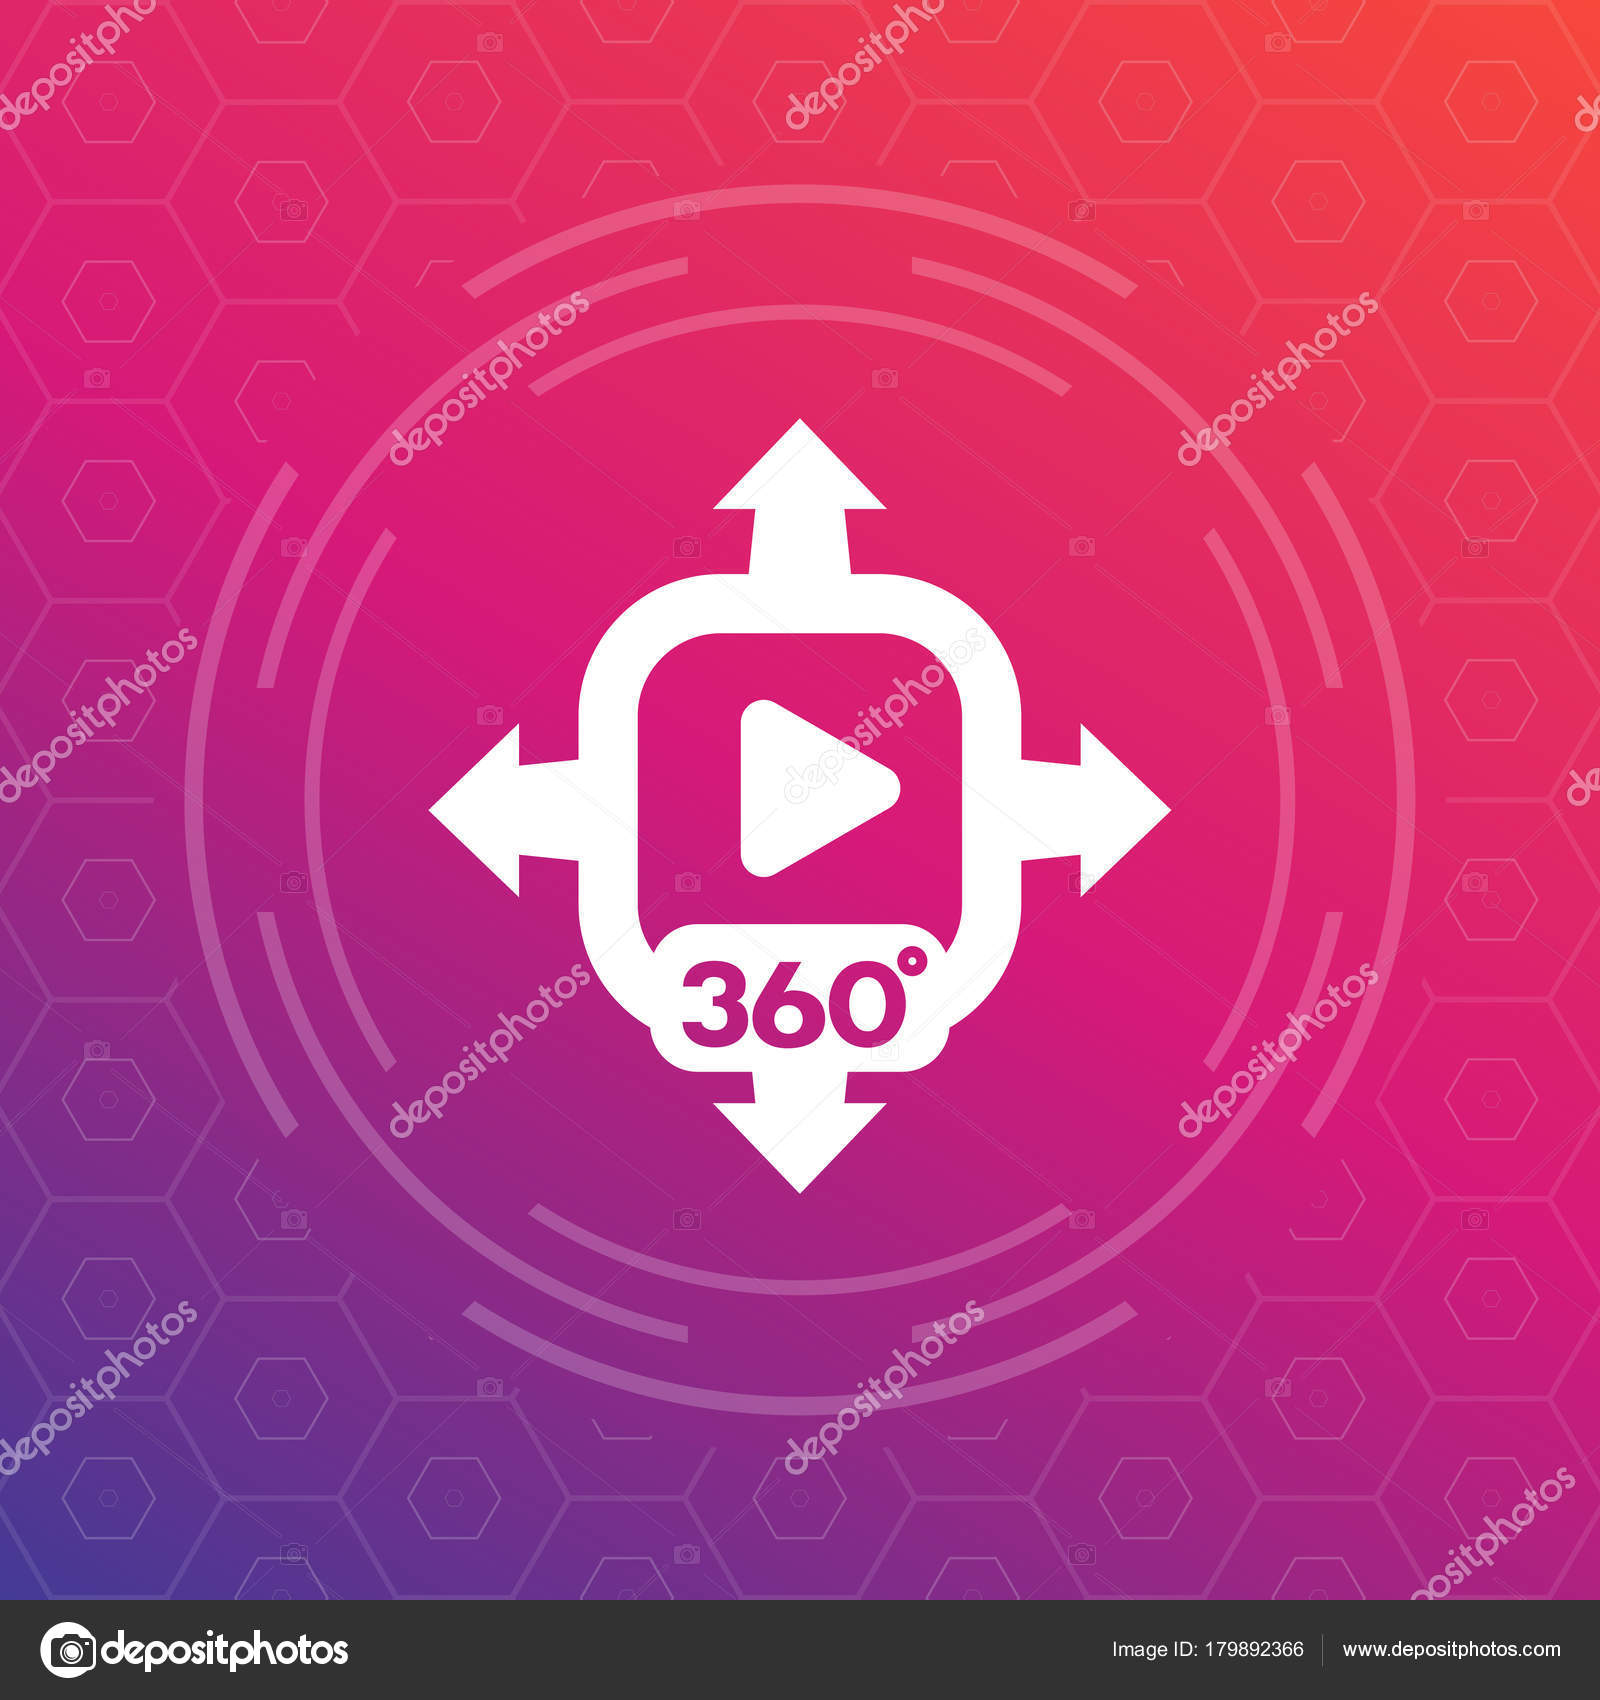 Degrees text symbol choice image symbol and sign ideas 360 degrees content icon vector symbol stock vector nexusby 360 degrees content icon vector symbol stock buycottarizona